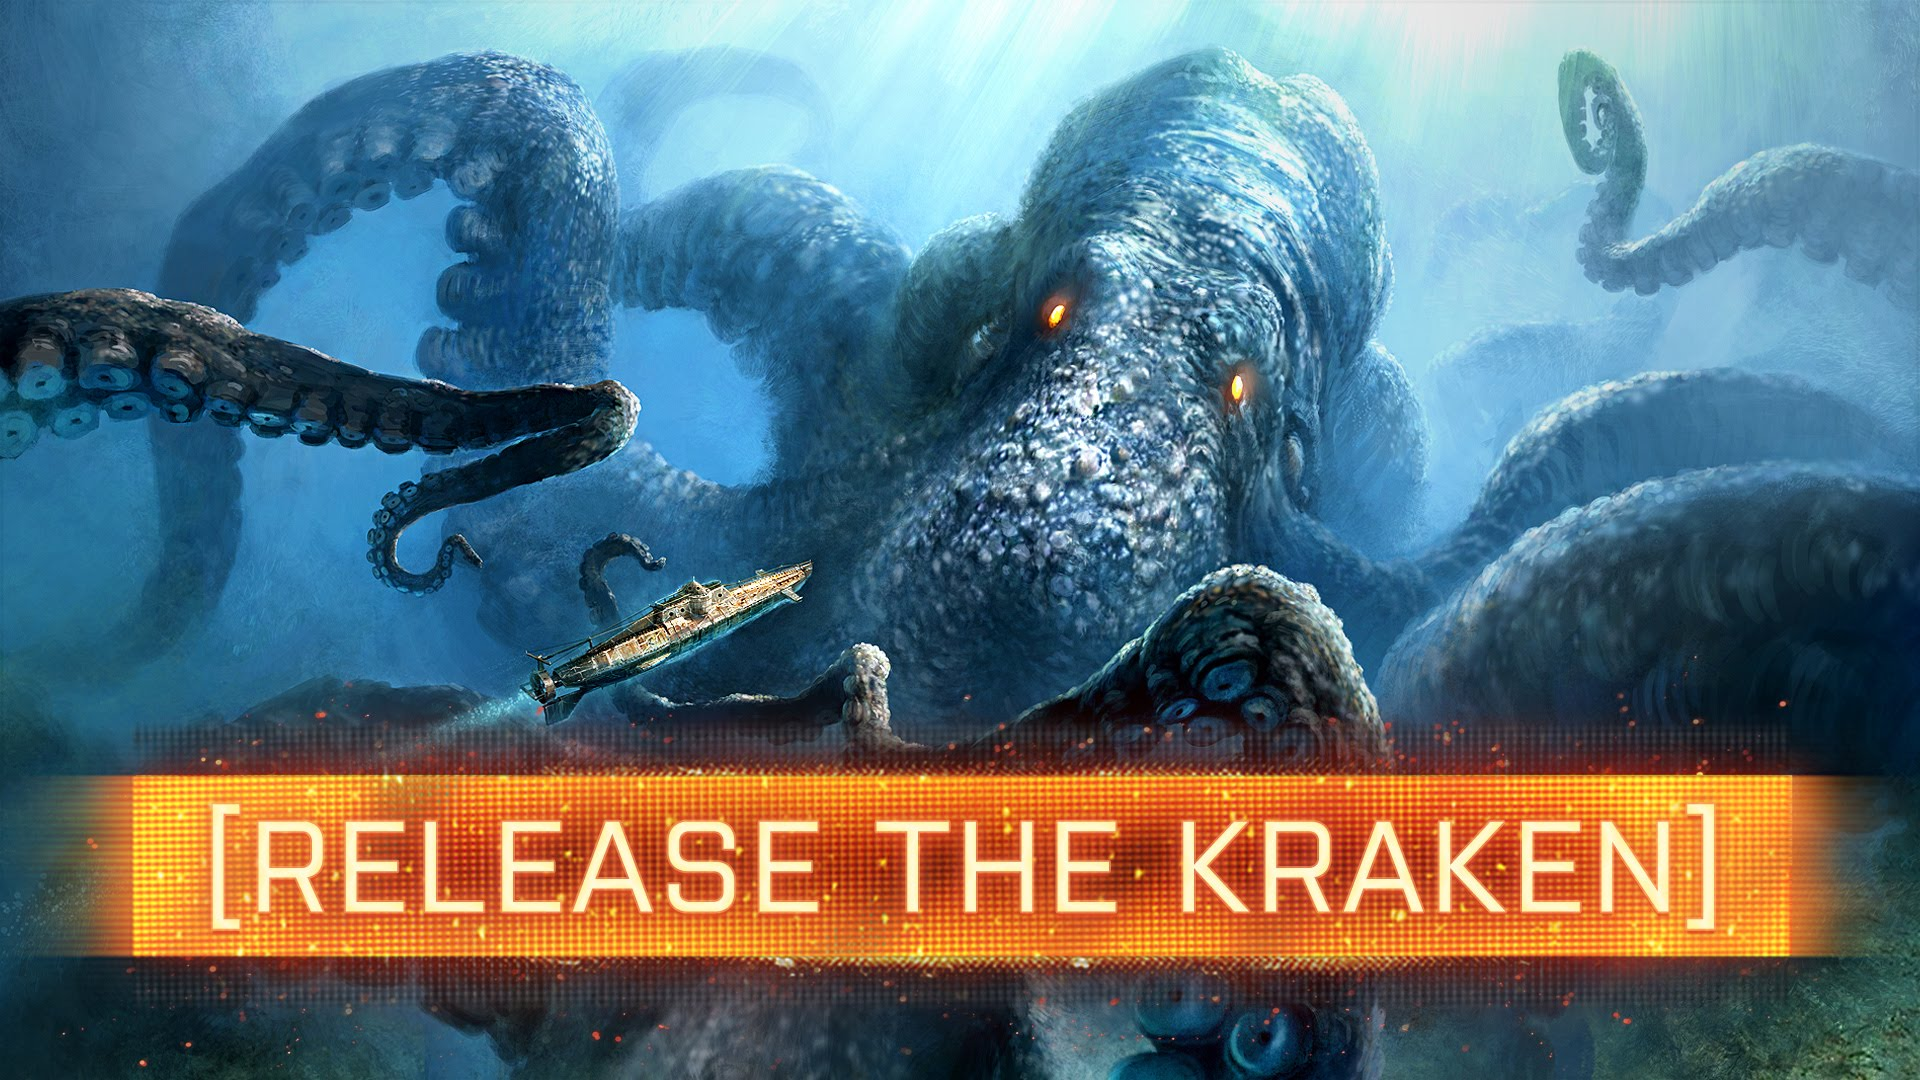 Battlefield 4 paracal storm kraken mystery what we know so far